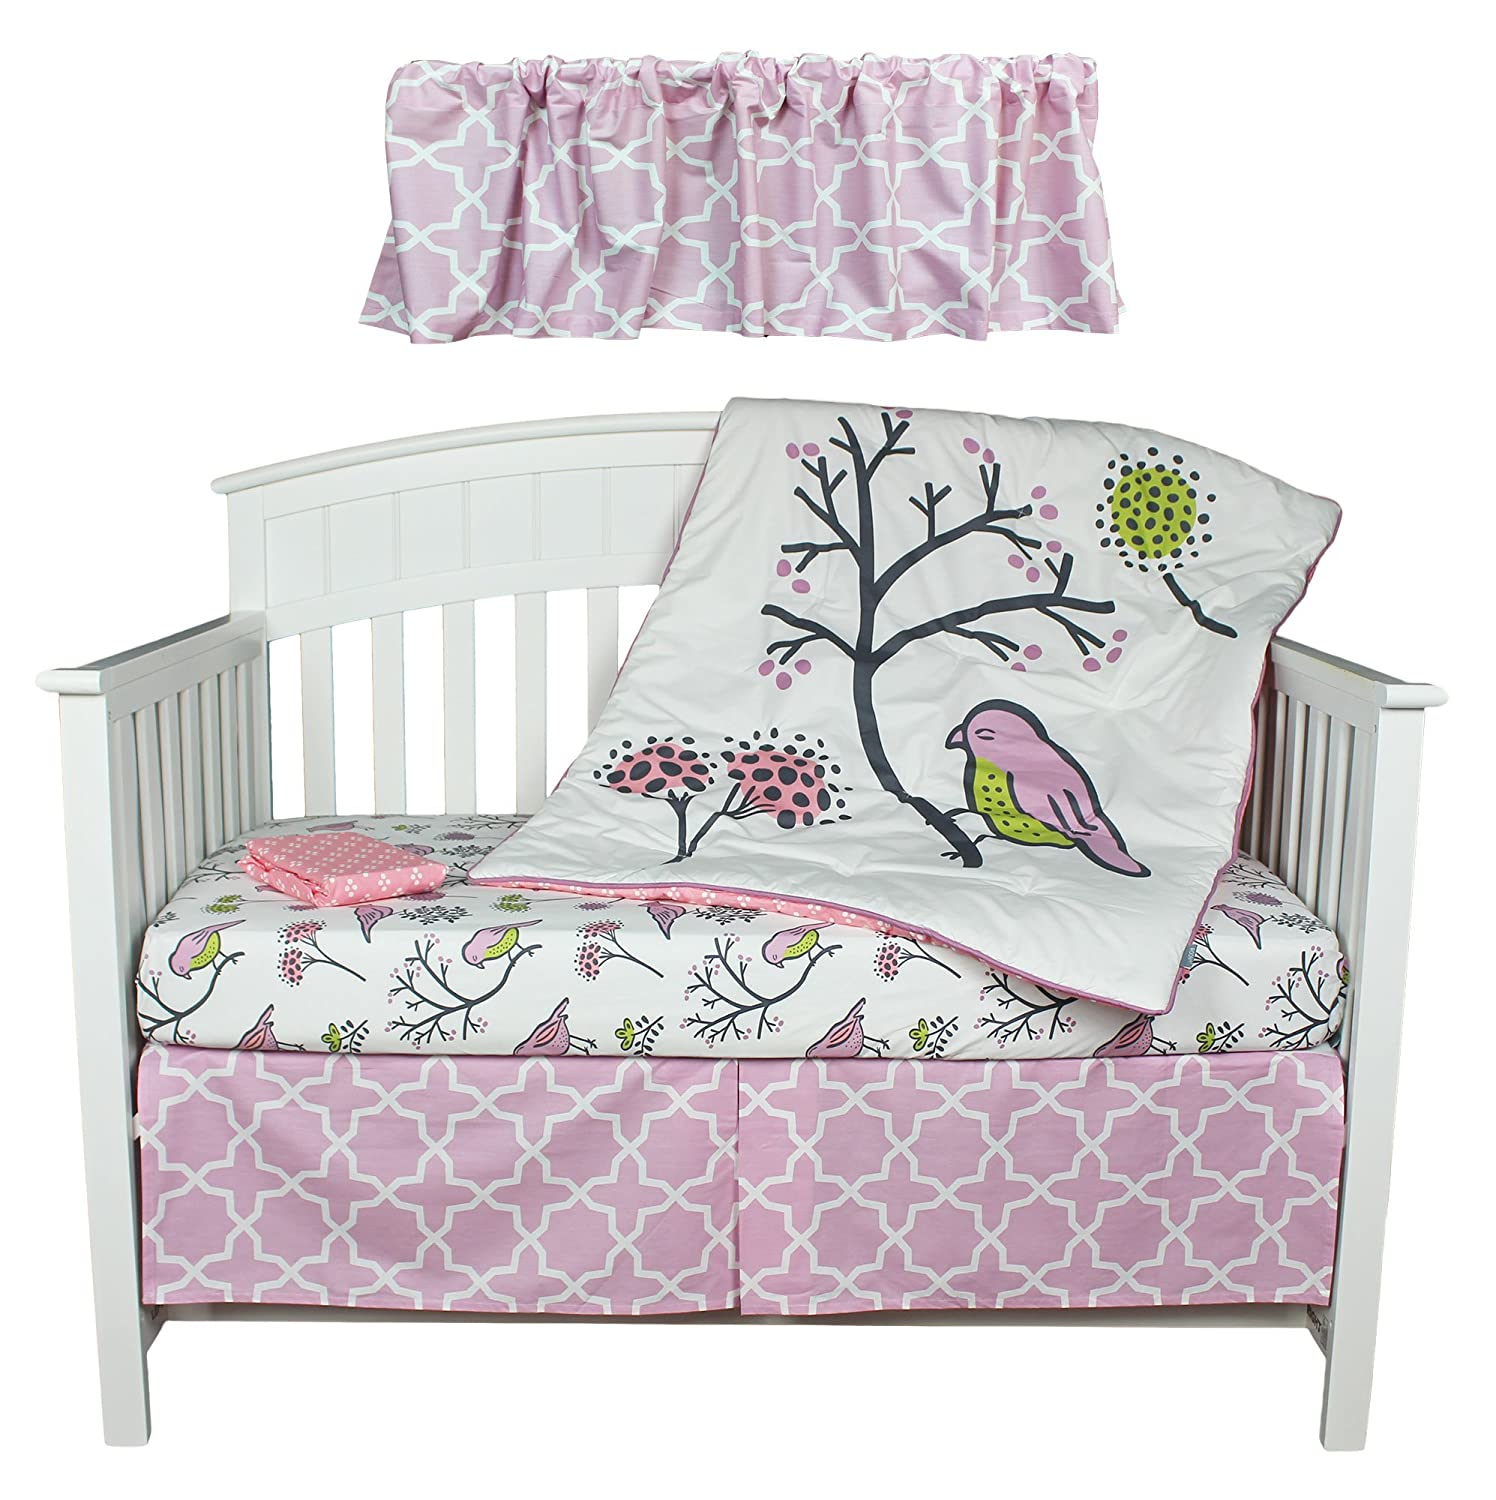 Kidsline Birds and Flowers Crib Bedding